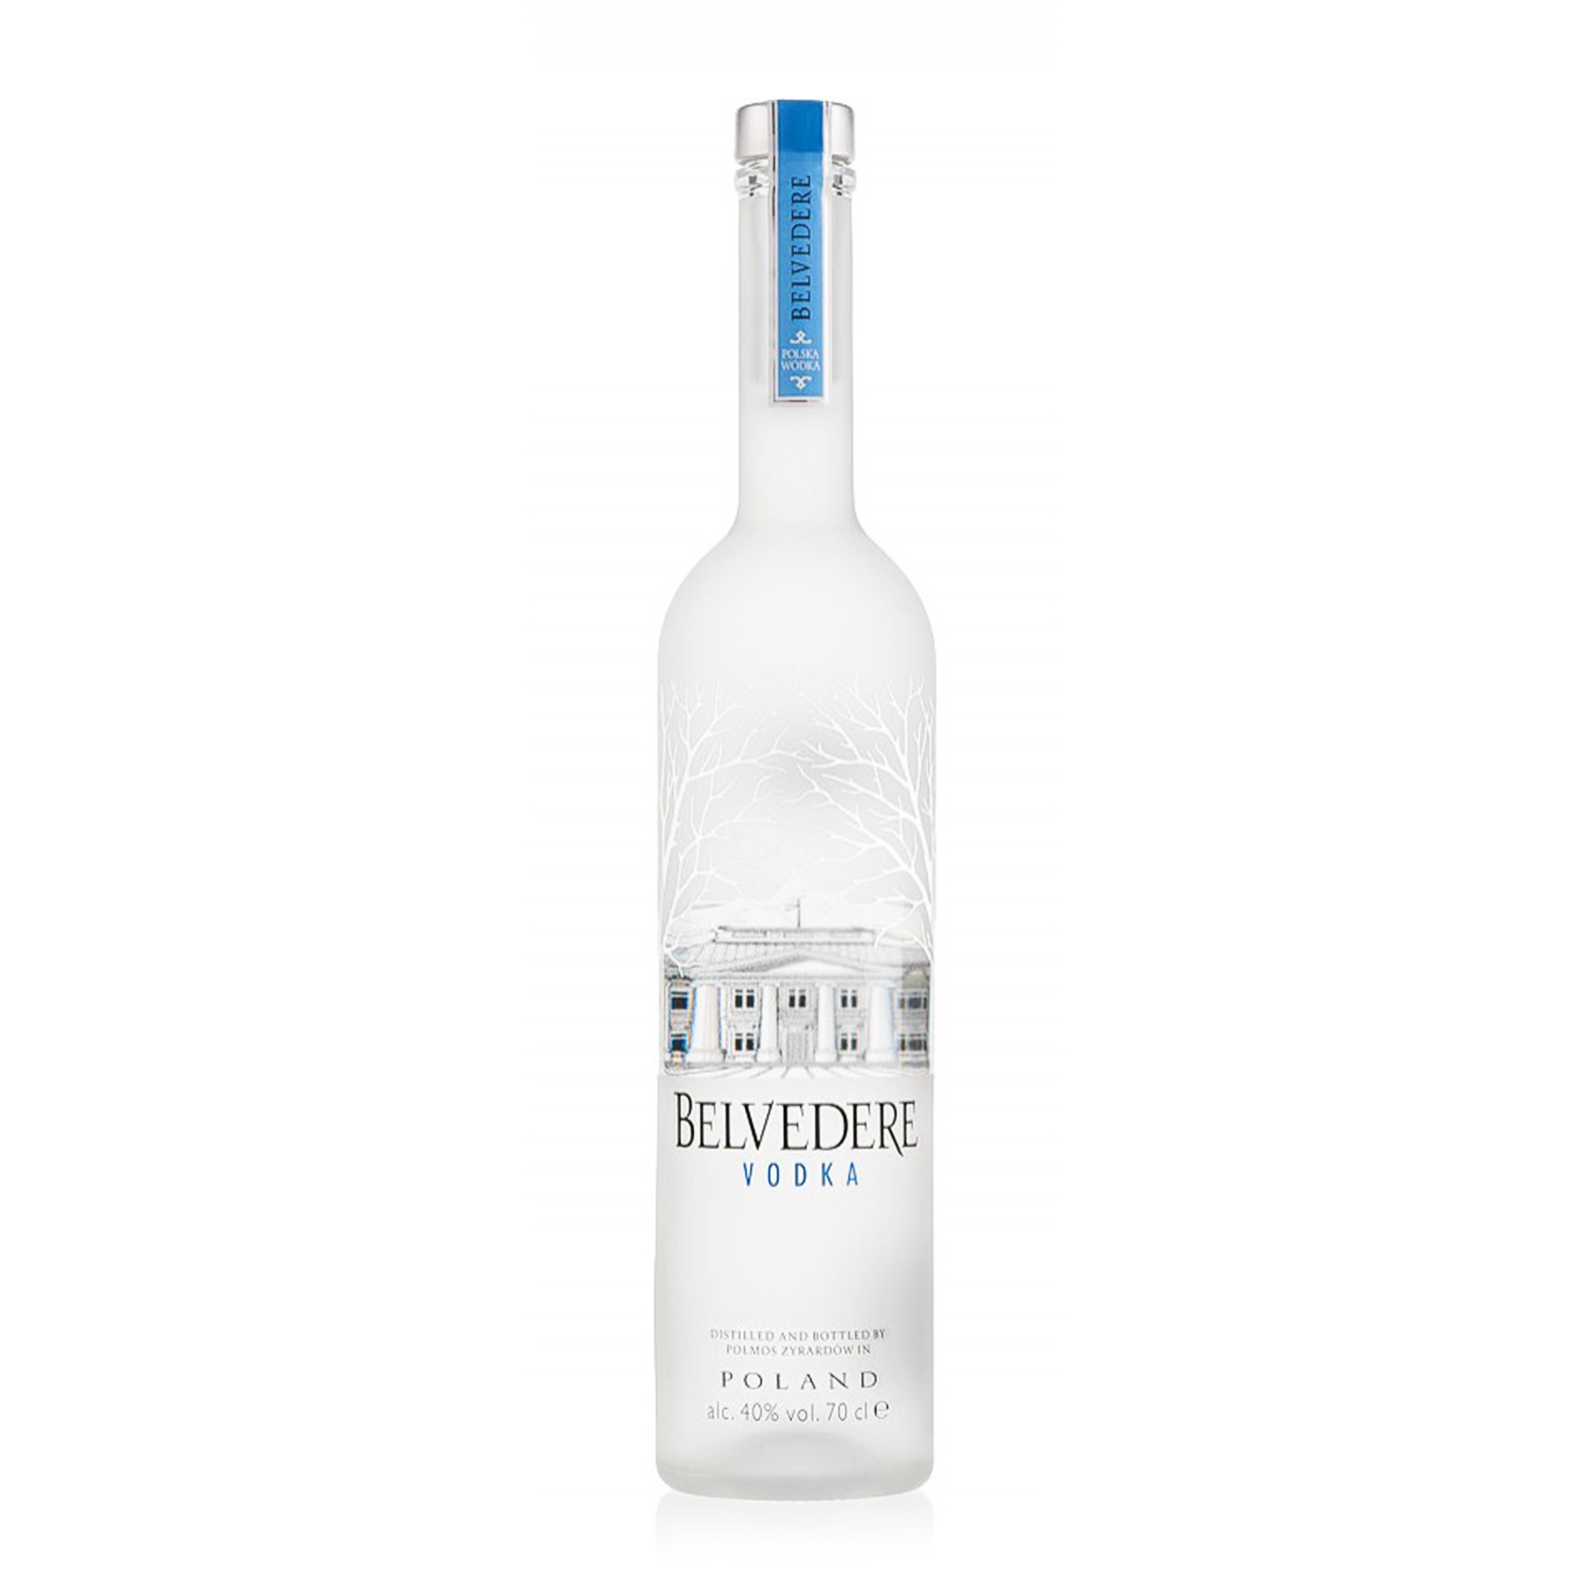 Pure Original Polish Luxury Vodka - 175cl - Belvedere